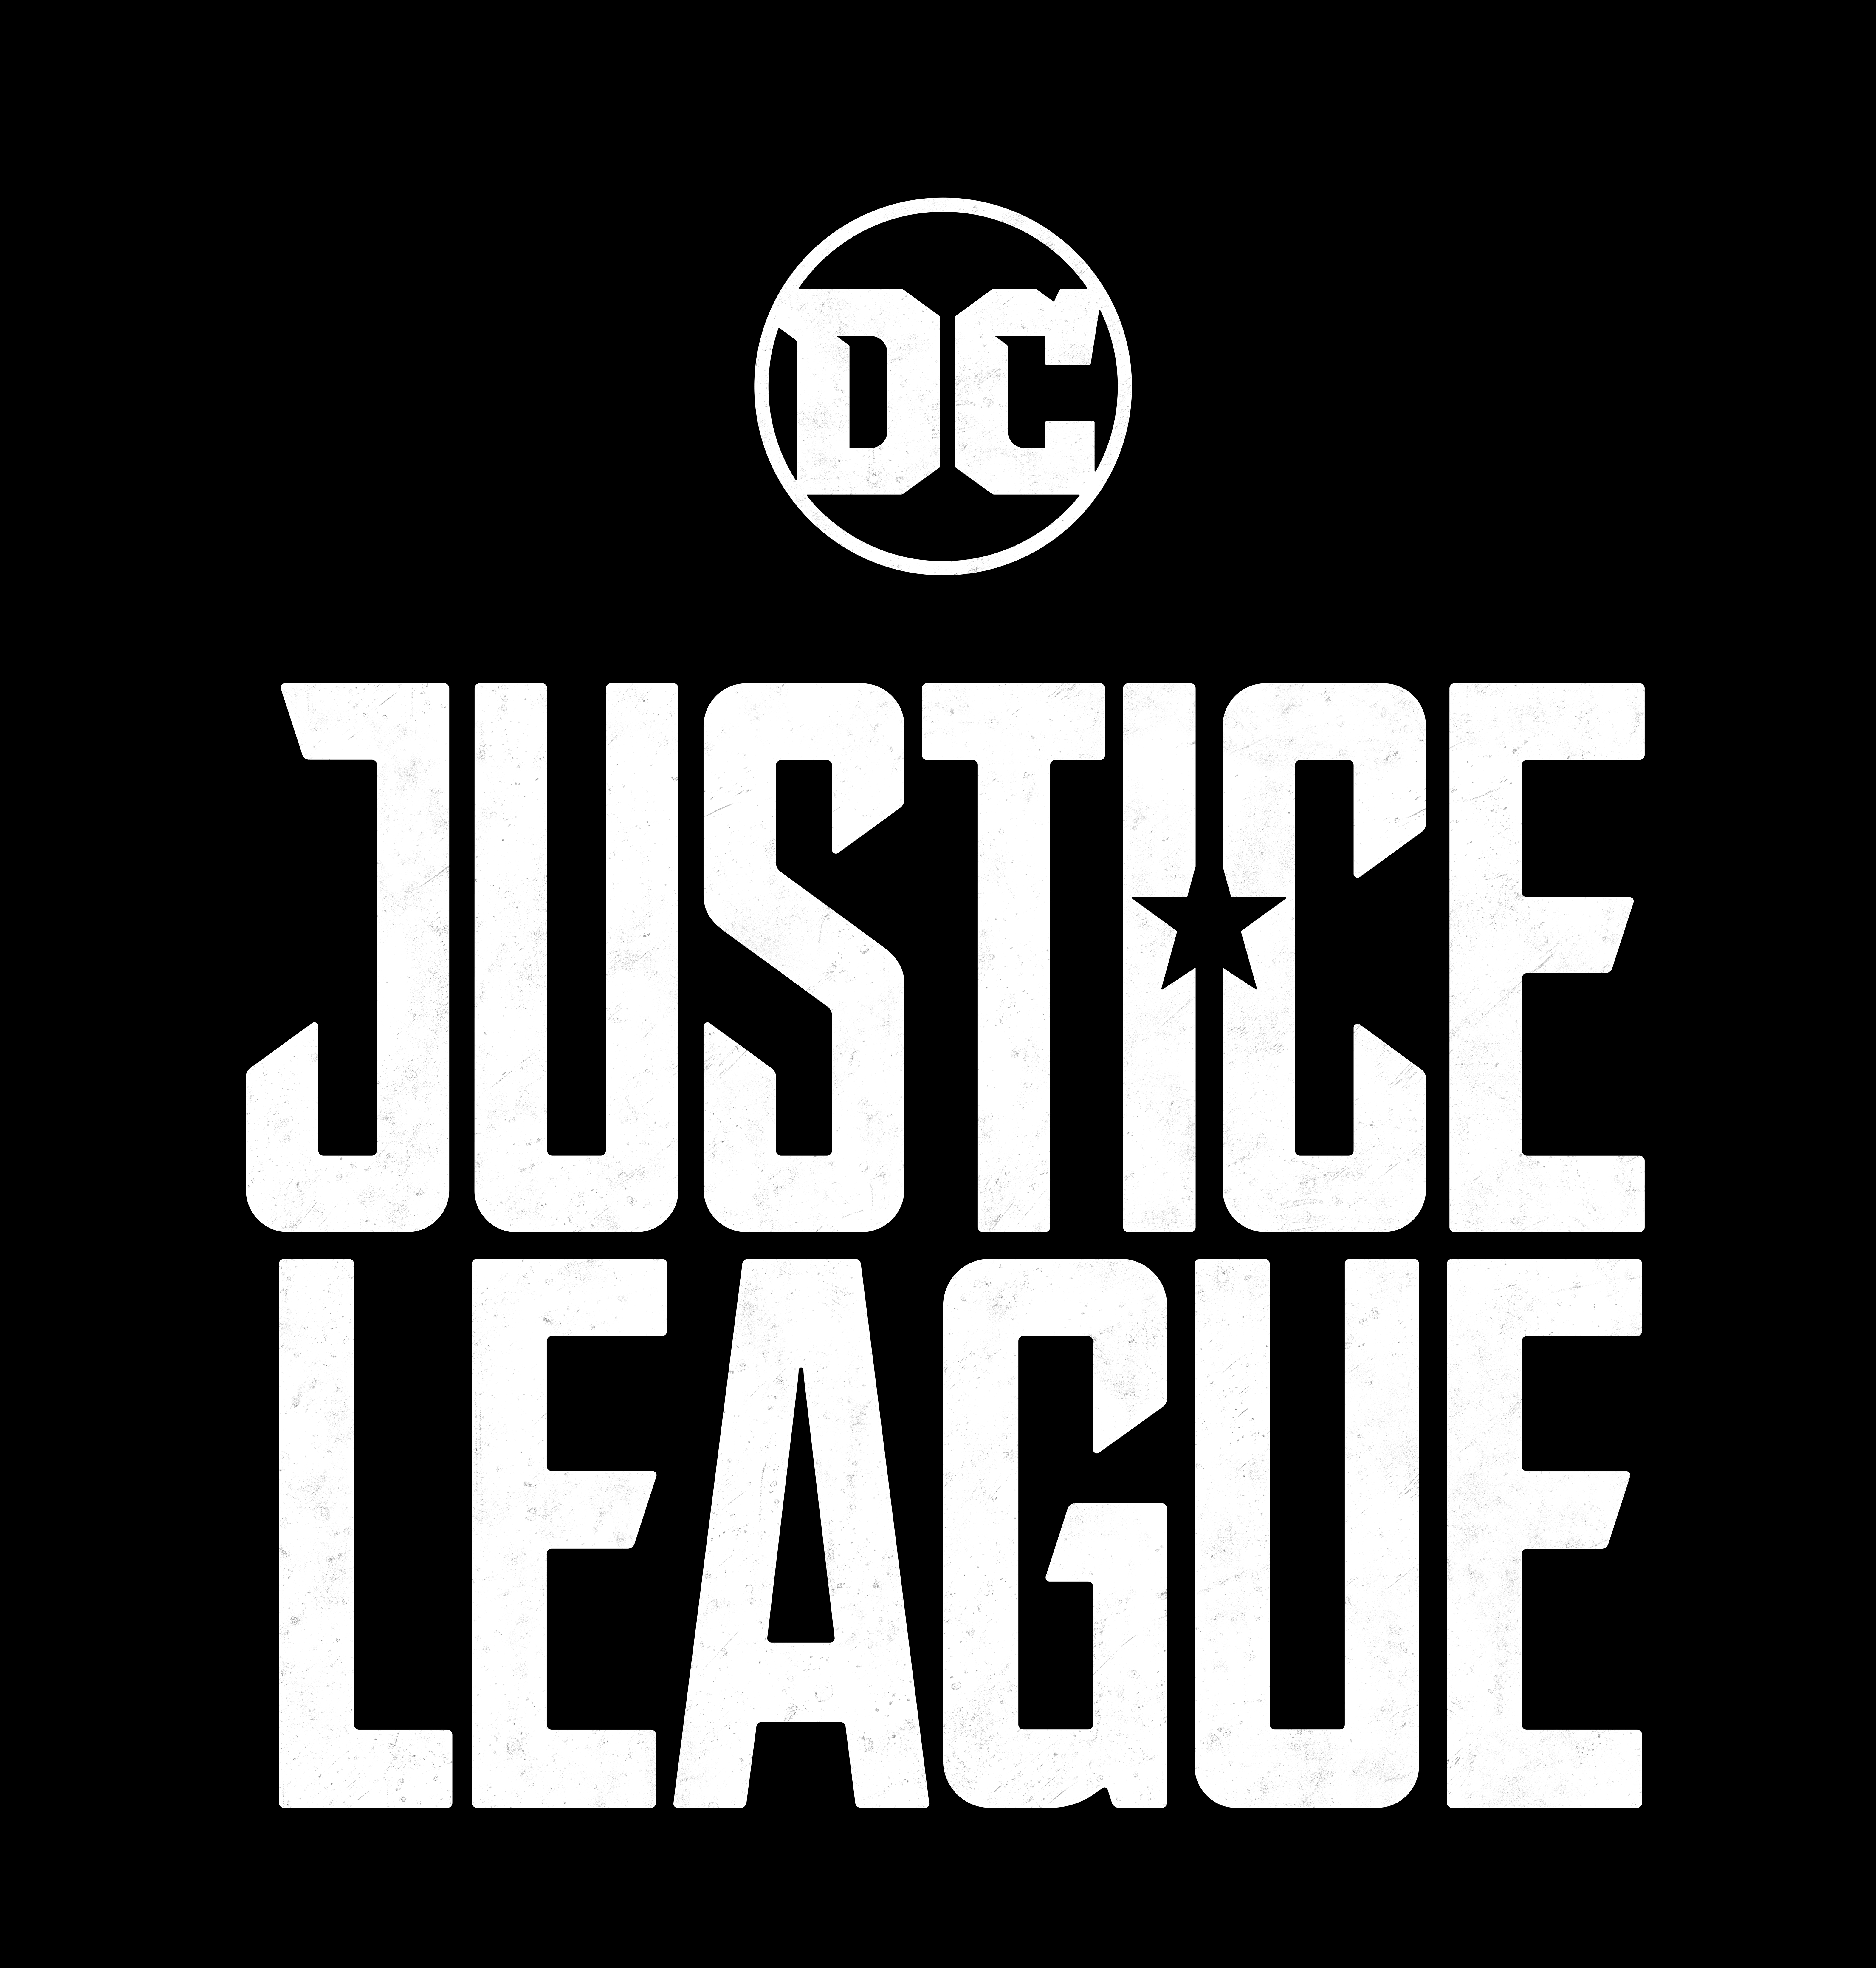 Updated Justice League Logo Pushes The DC Brand Forward Batman - Superheroes re imagined as if they were sponsored by big brands